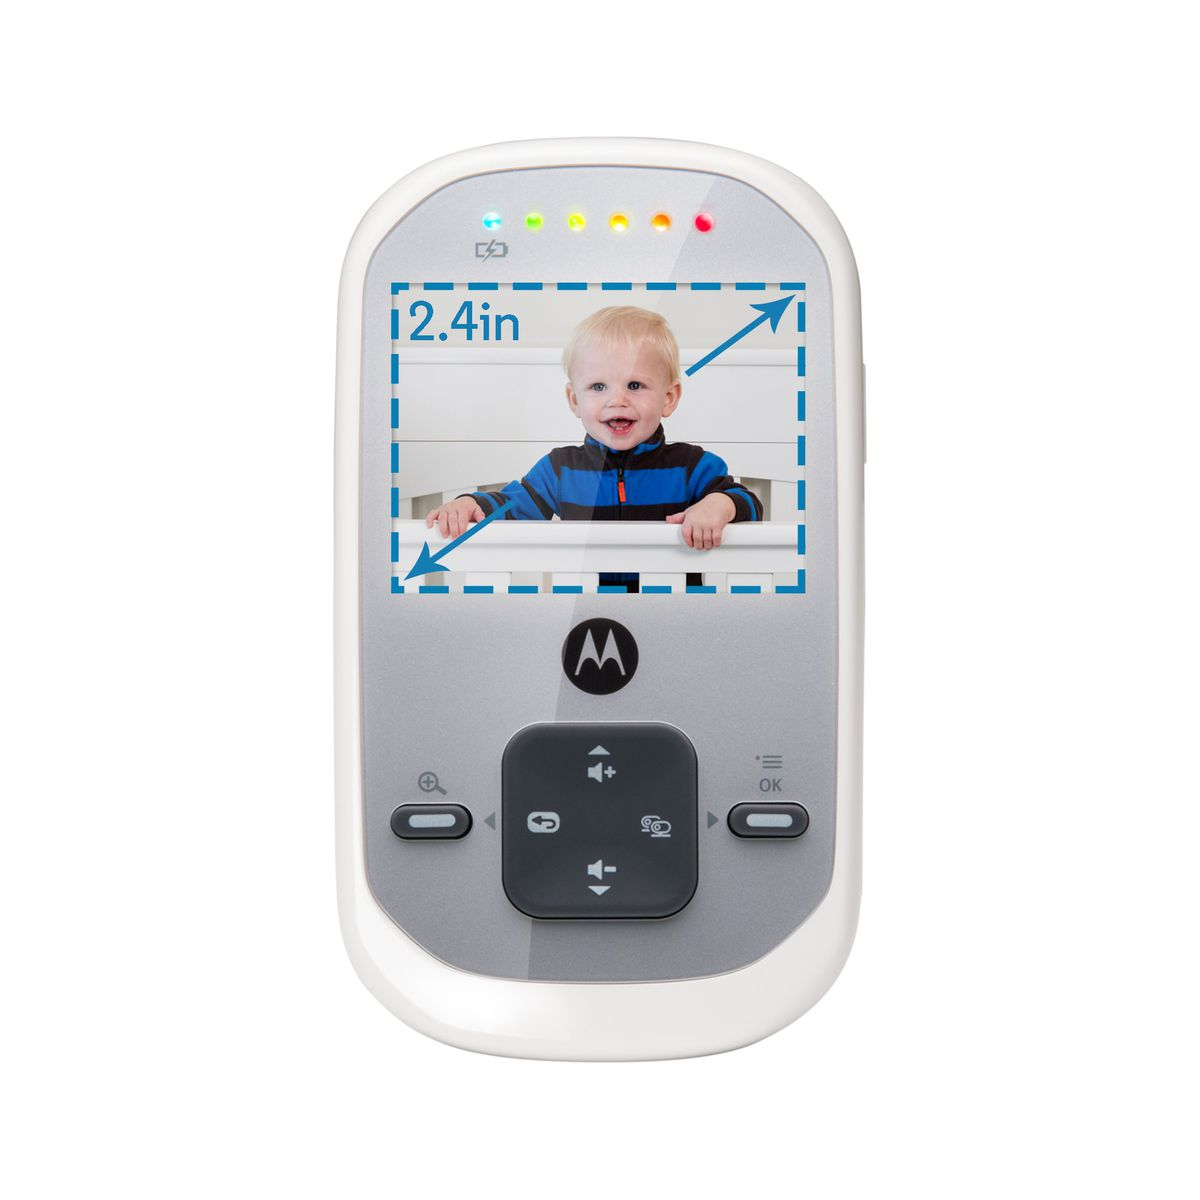 motorola mbp622 video baby monitor buy online in south africa. Black Bedroom Furniture Sets. Home Design Ideas